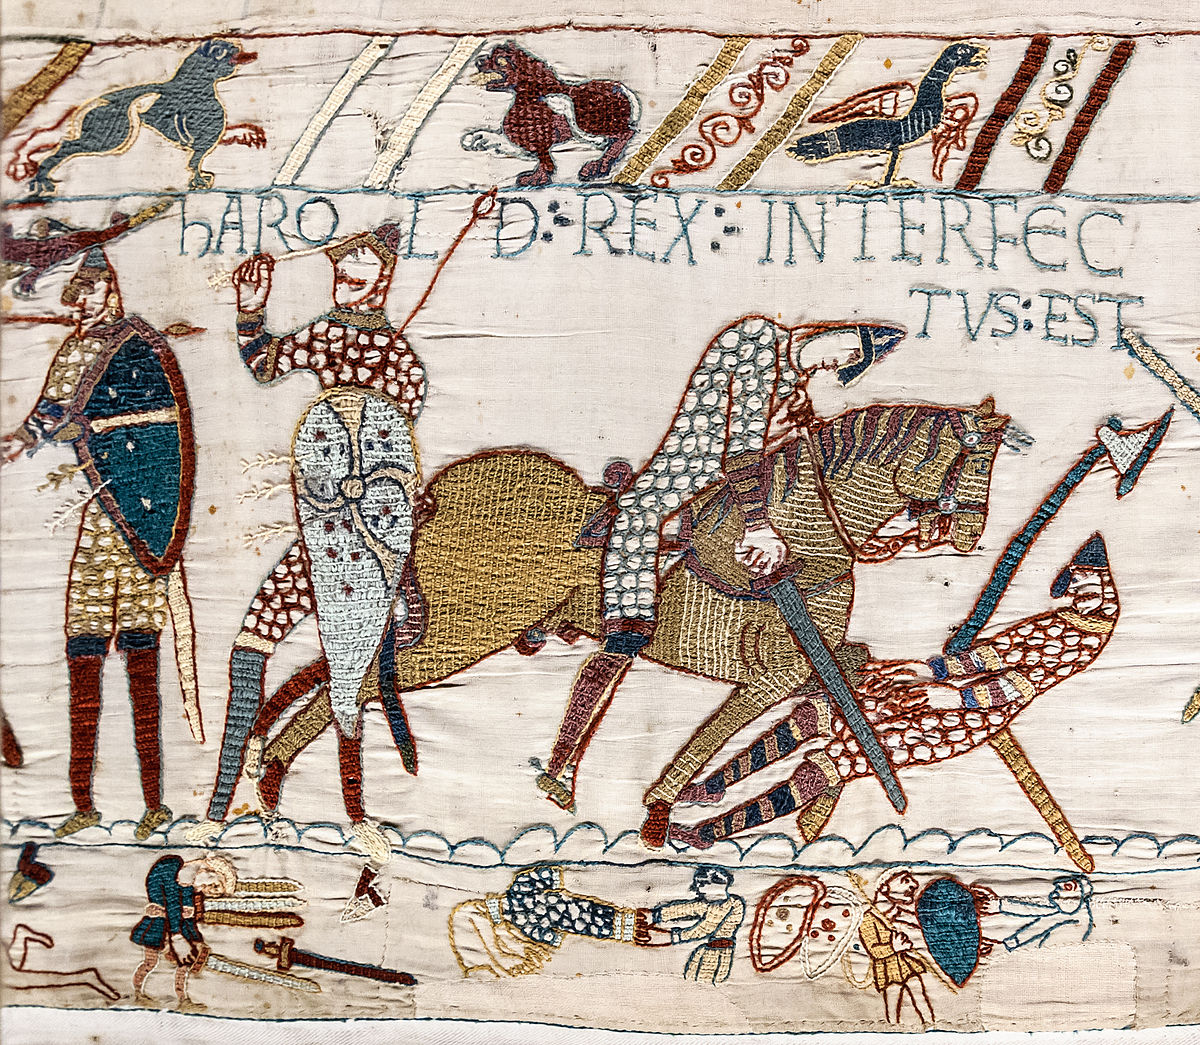 https://upload.wikimedia.org/wikipedia/commons/thumb/b/bb/Bayeux_Tapestry_scene57_Harold_death.jpg/1200px-Bayeux_Tapestry_scene57_Harold_death.jpg